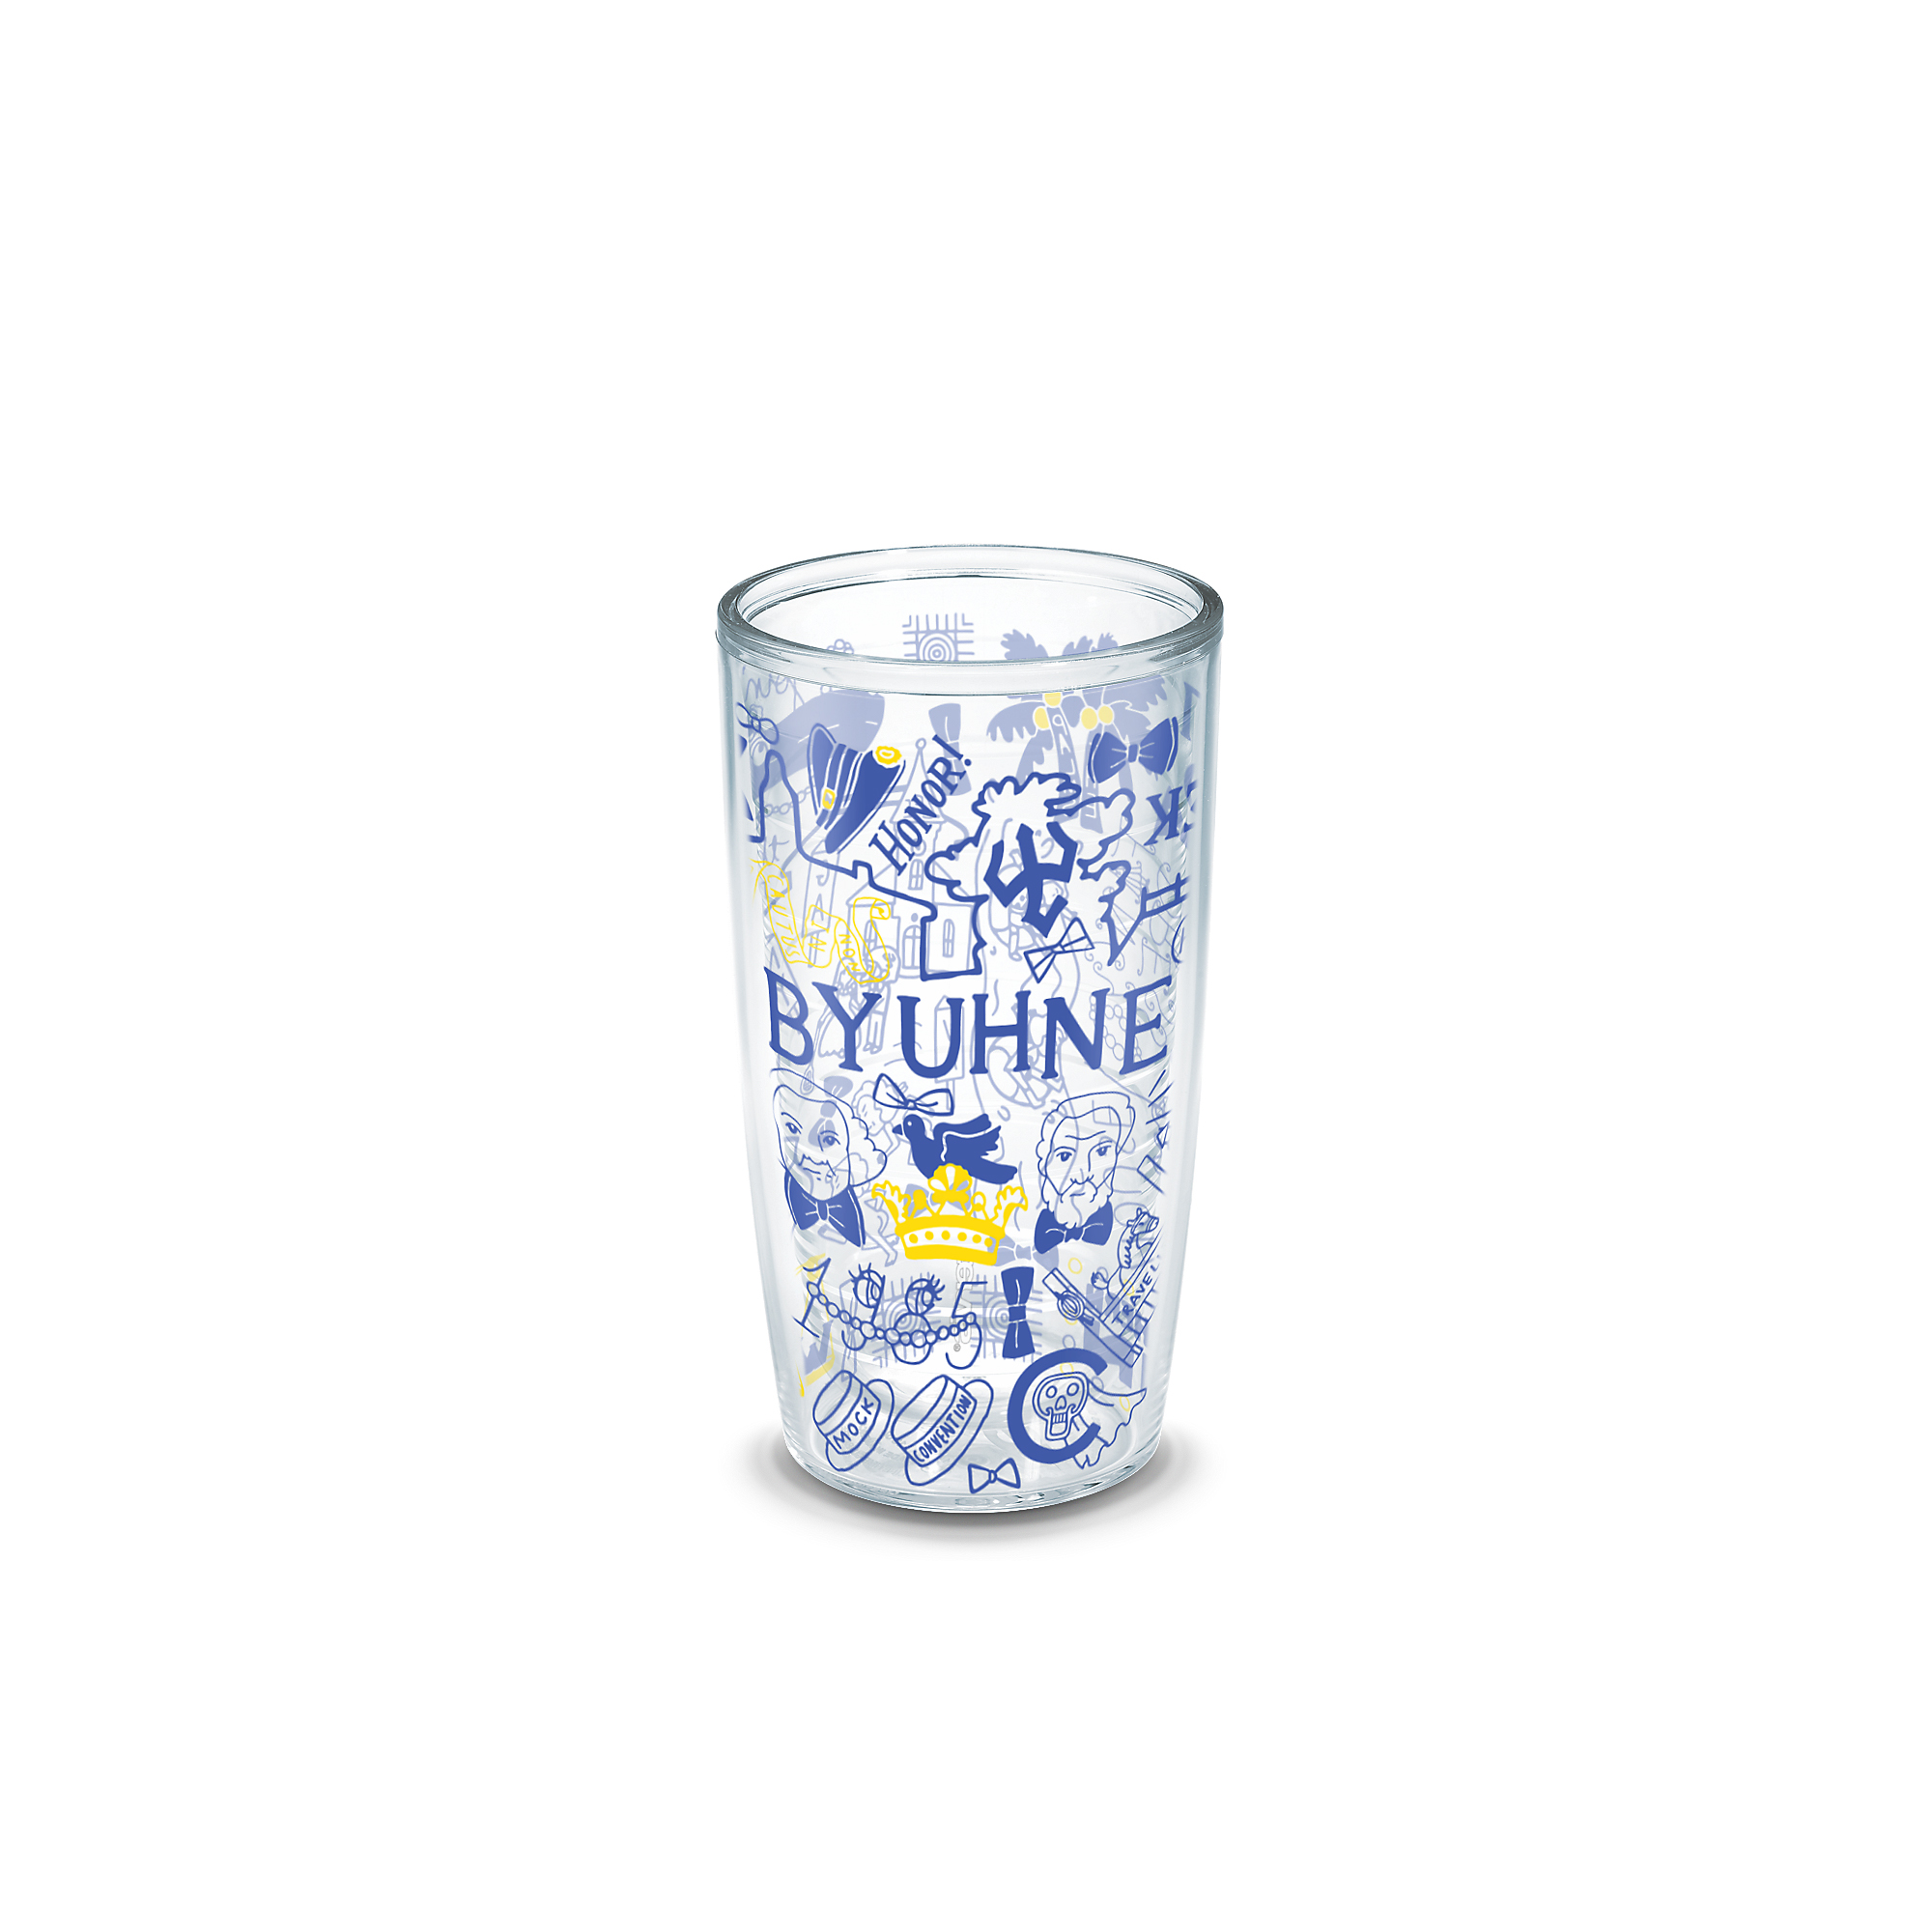 Tervis Traditions Tumbler